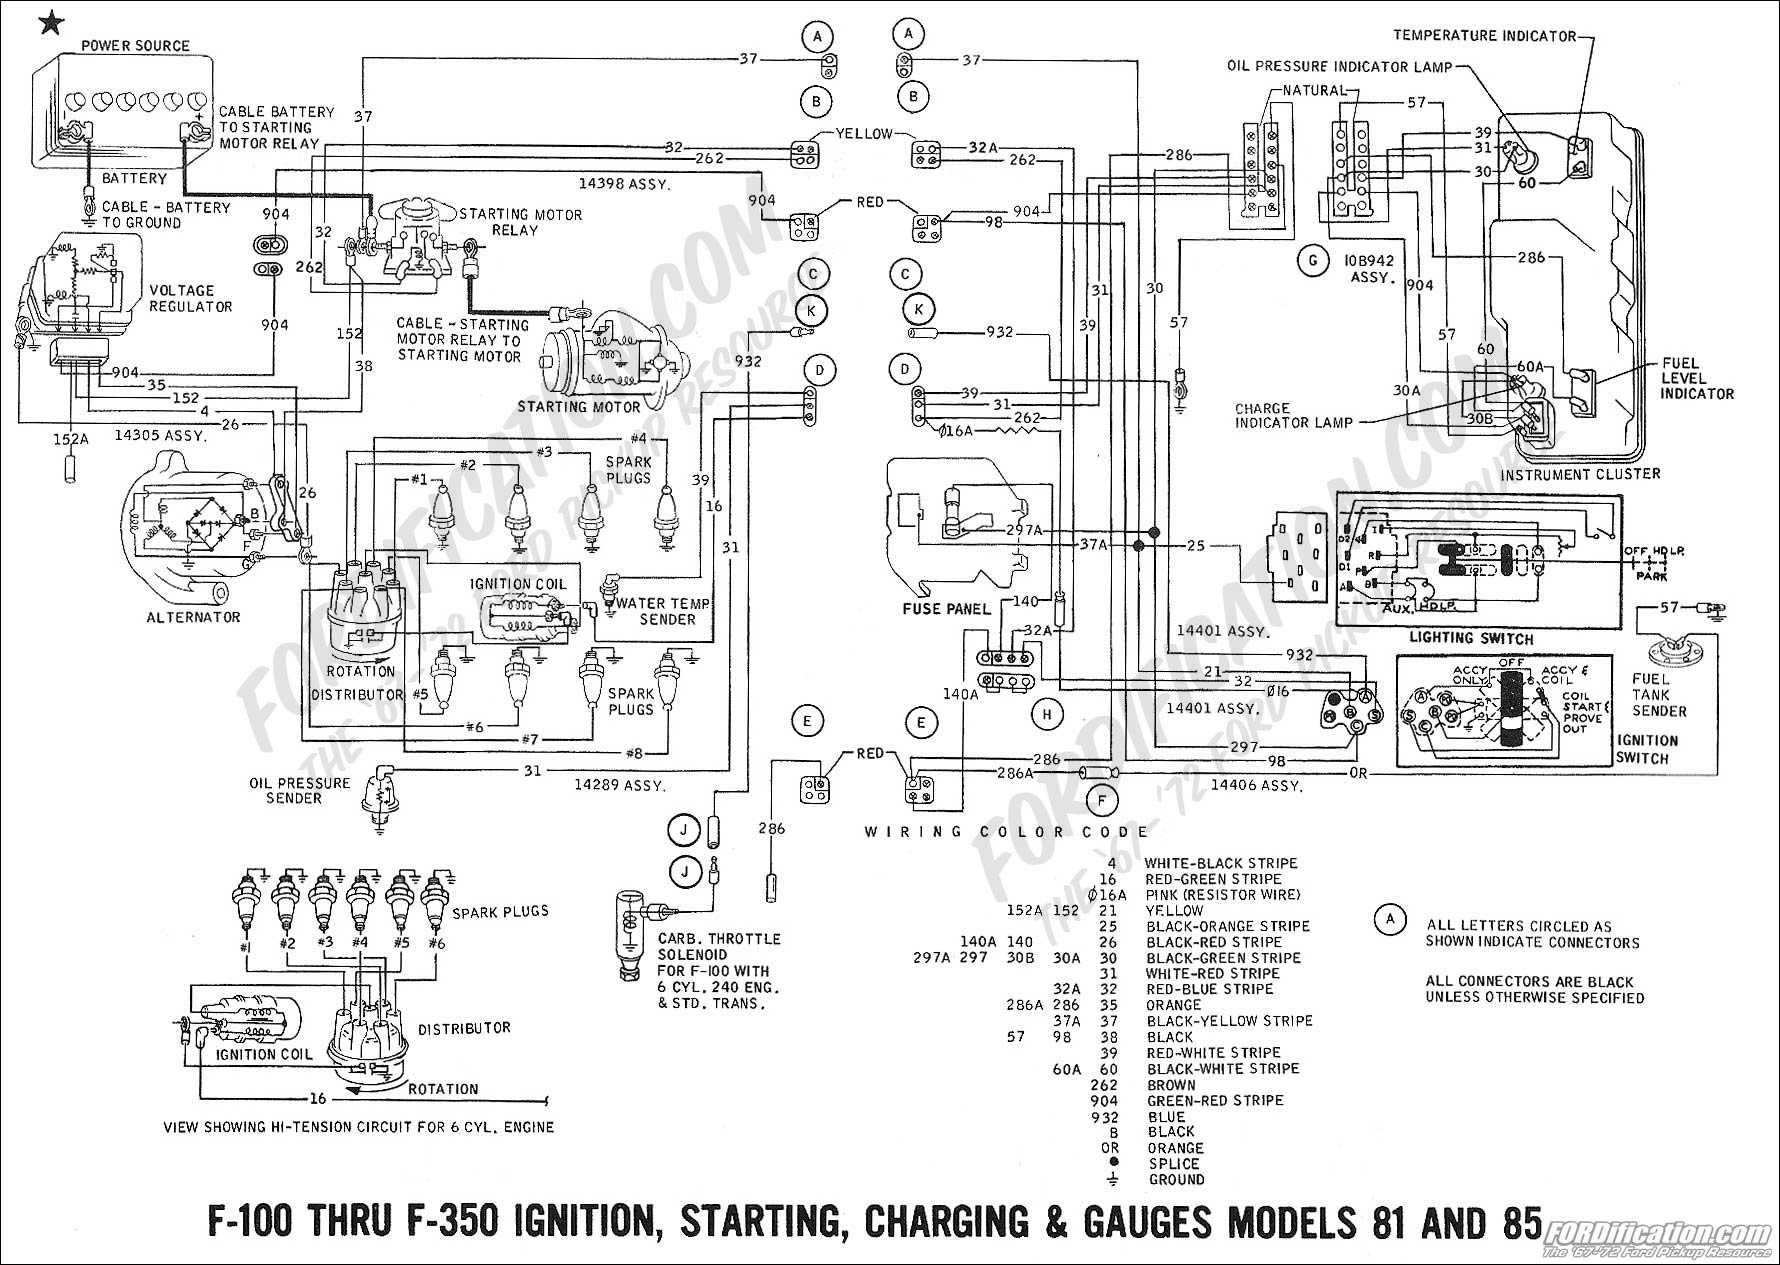 Ford 3500 Wiring Diagram Data 2810 Tractor Series 2006 F350 Alternator Diesel